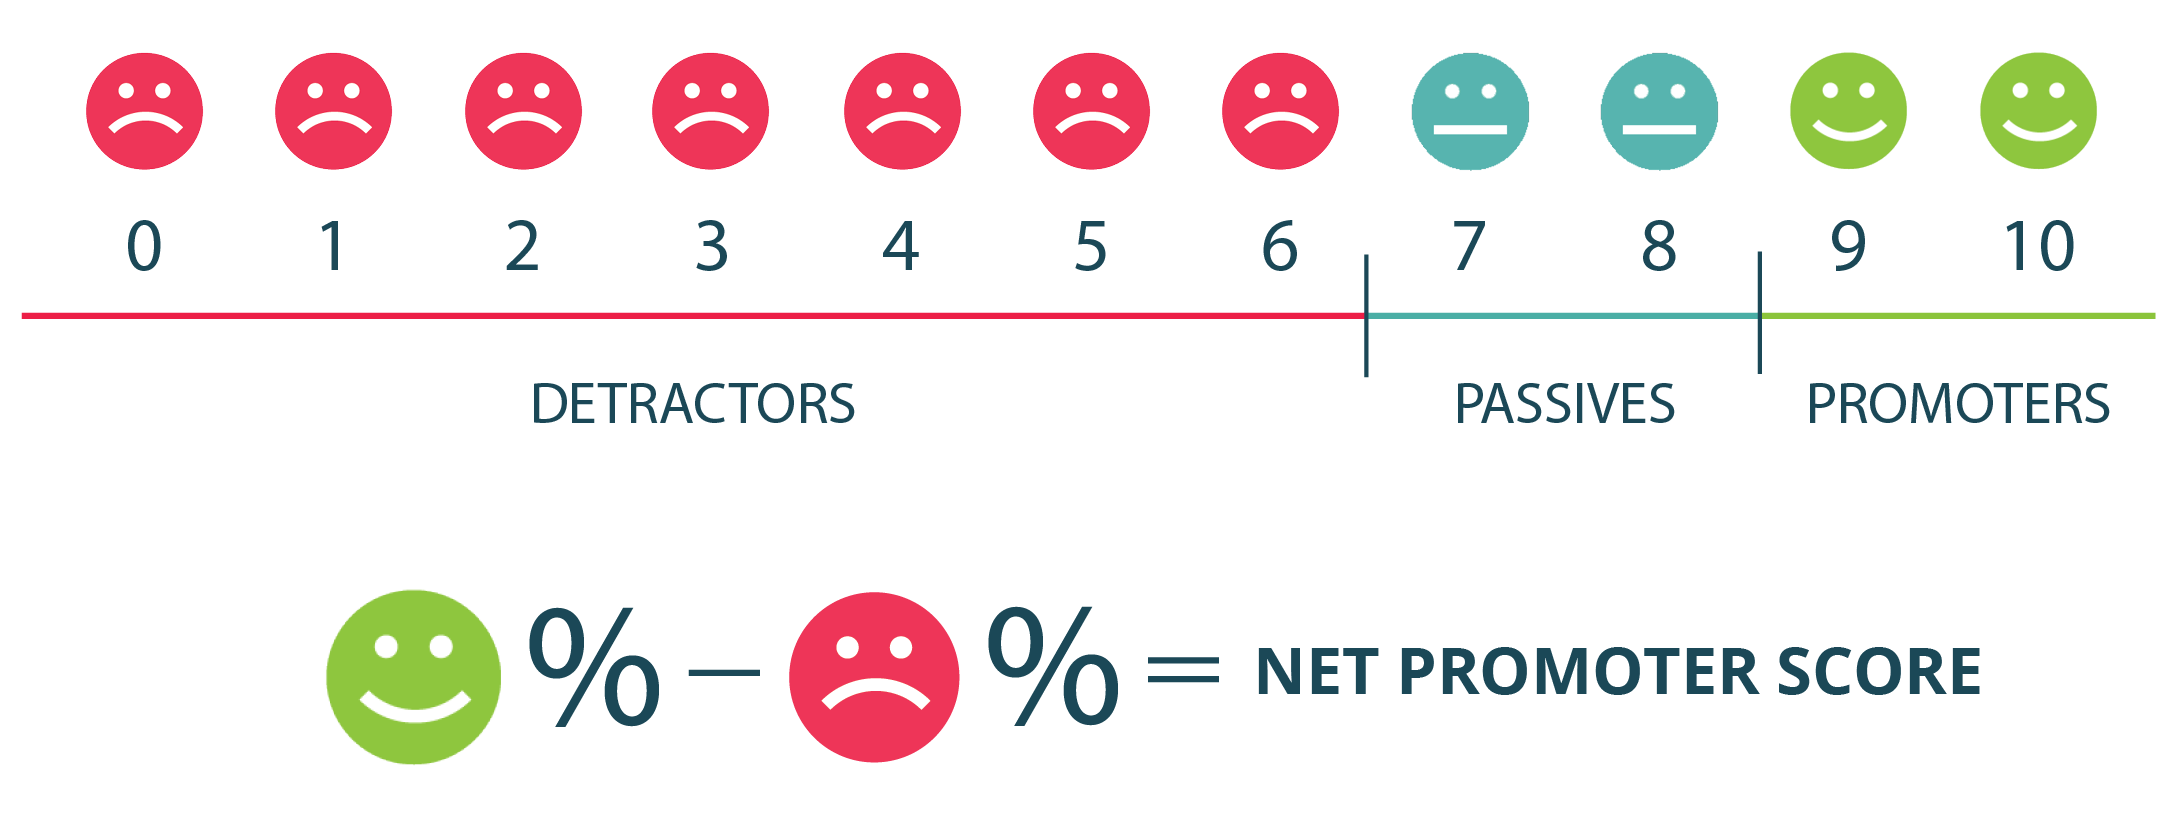 Net Promoter Score scale to measure employee engagement